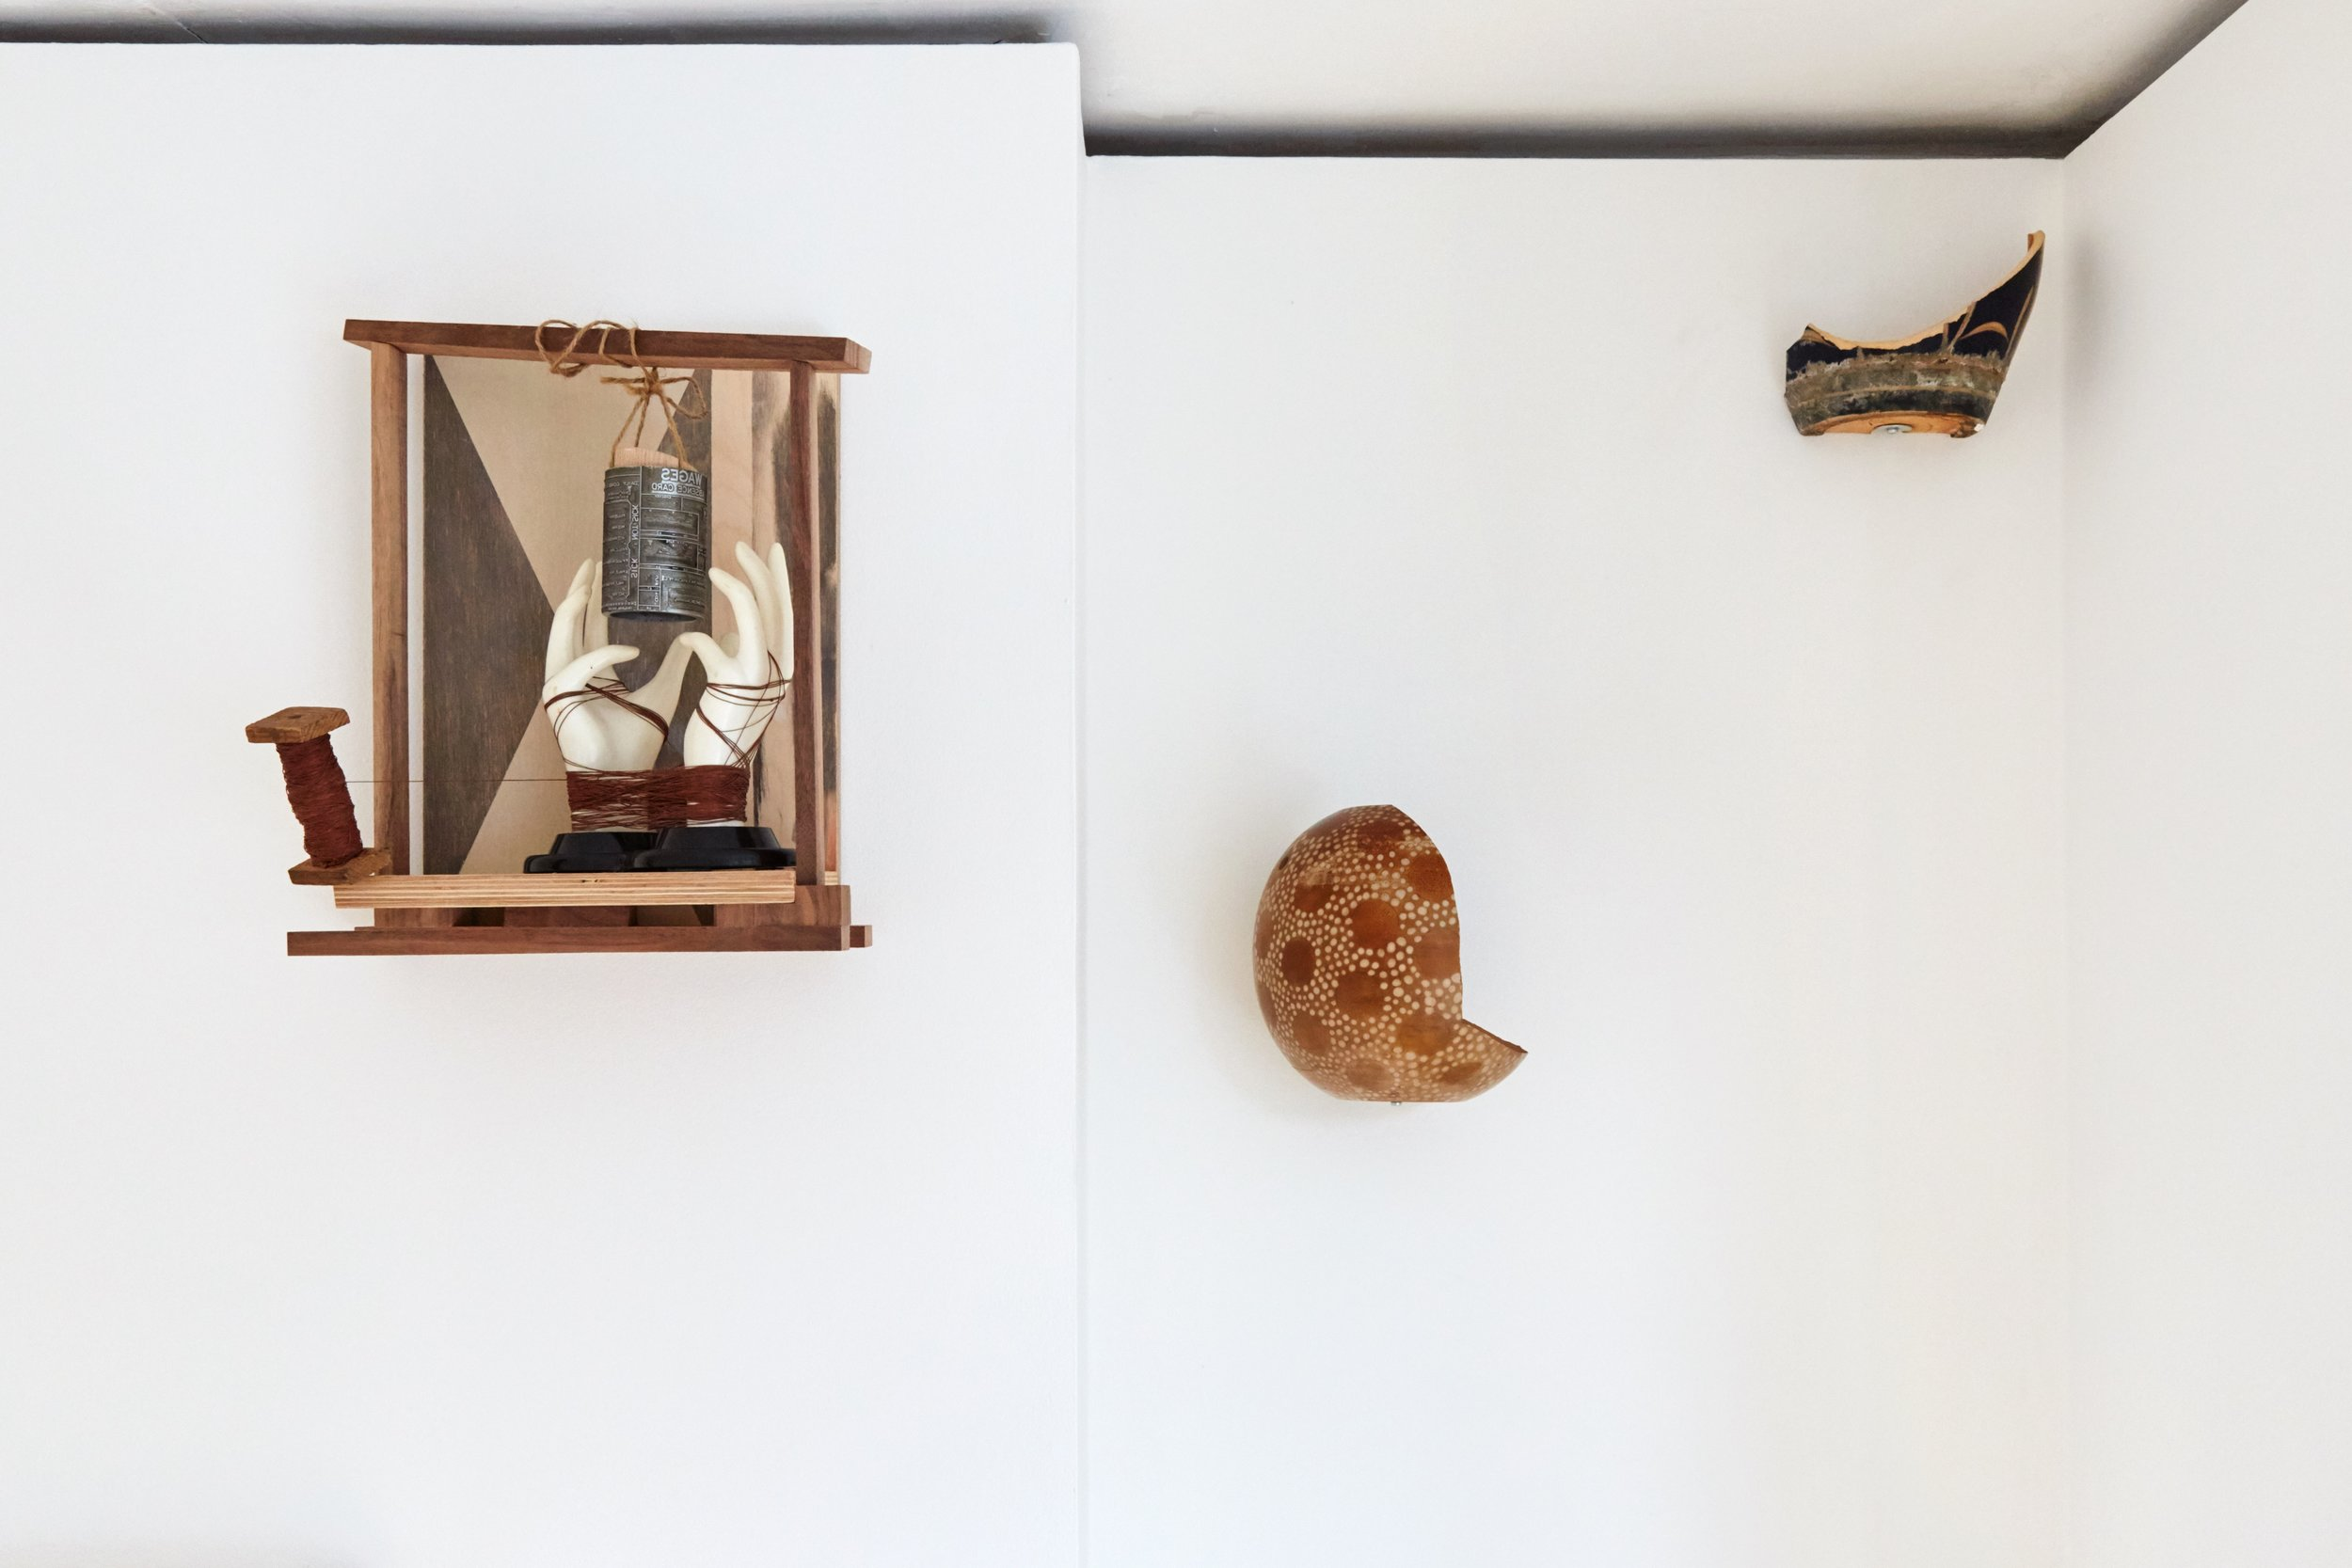 A Composition of Cream and Brown,  2019 Ash, Walnut and Painted Plywood with String, Thread, Ring Holder, and Absence Card Print Roller 40 x 33 x 23 cm   Whernside,  2019 Found ceramics and Nutella 22 x 20 x 20 cm   Ingleborough,  2019 Found ceramics 15 x 20 x 10 cm